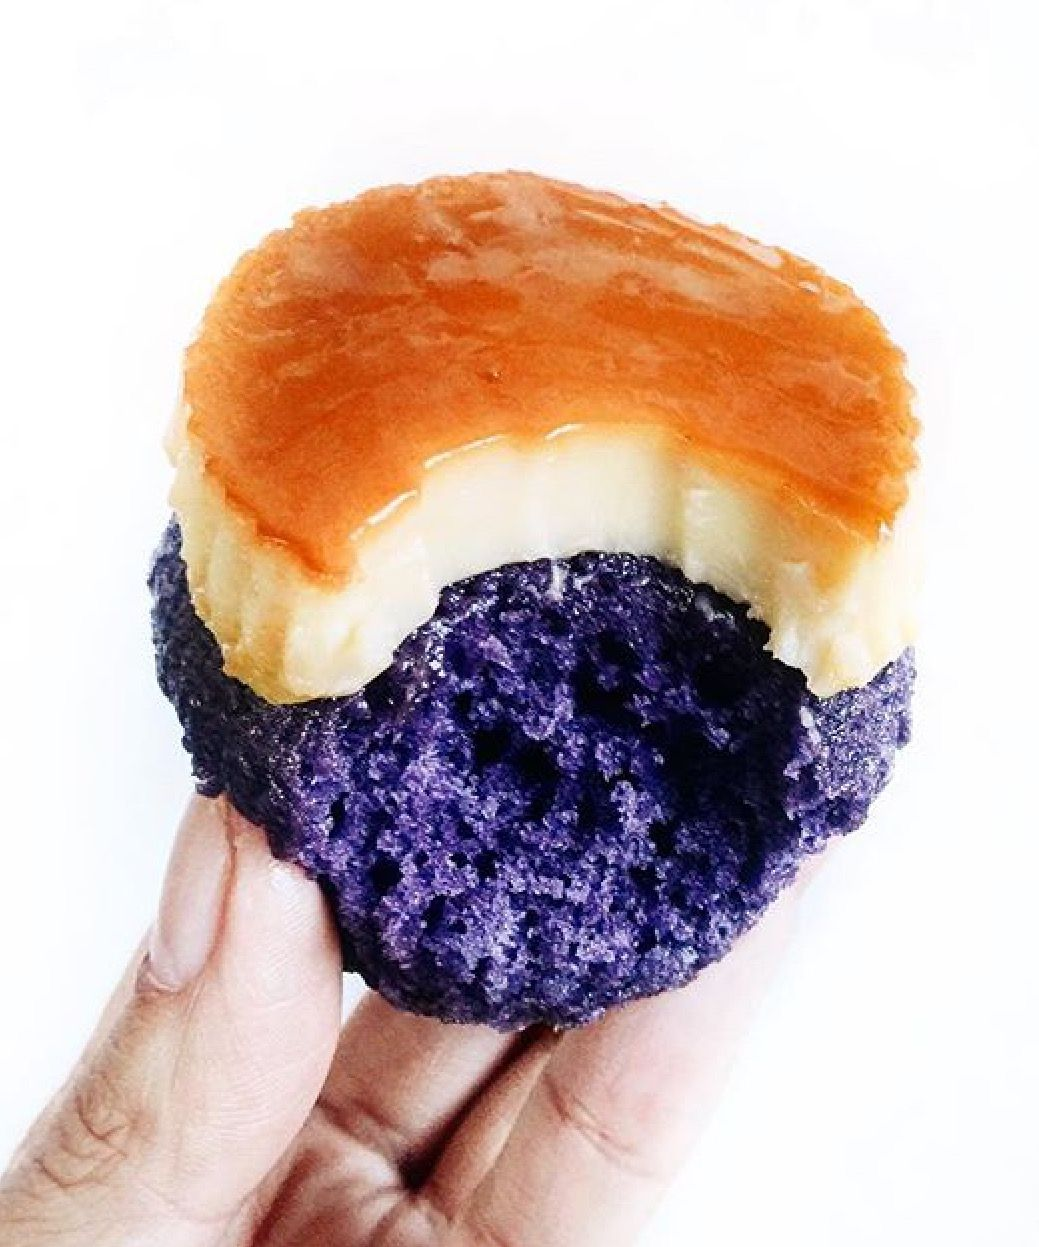 ube leche flan cupcakes backing pinterest. Black Bedroom Furniture Sets. Home Design Ideas